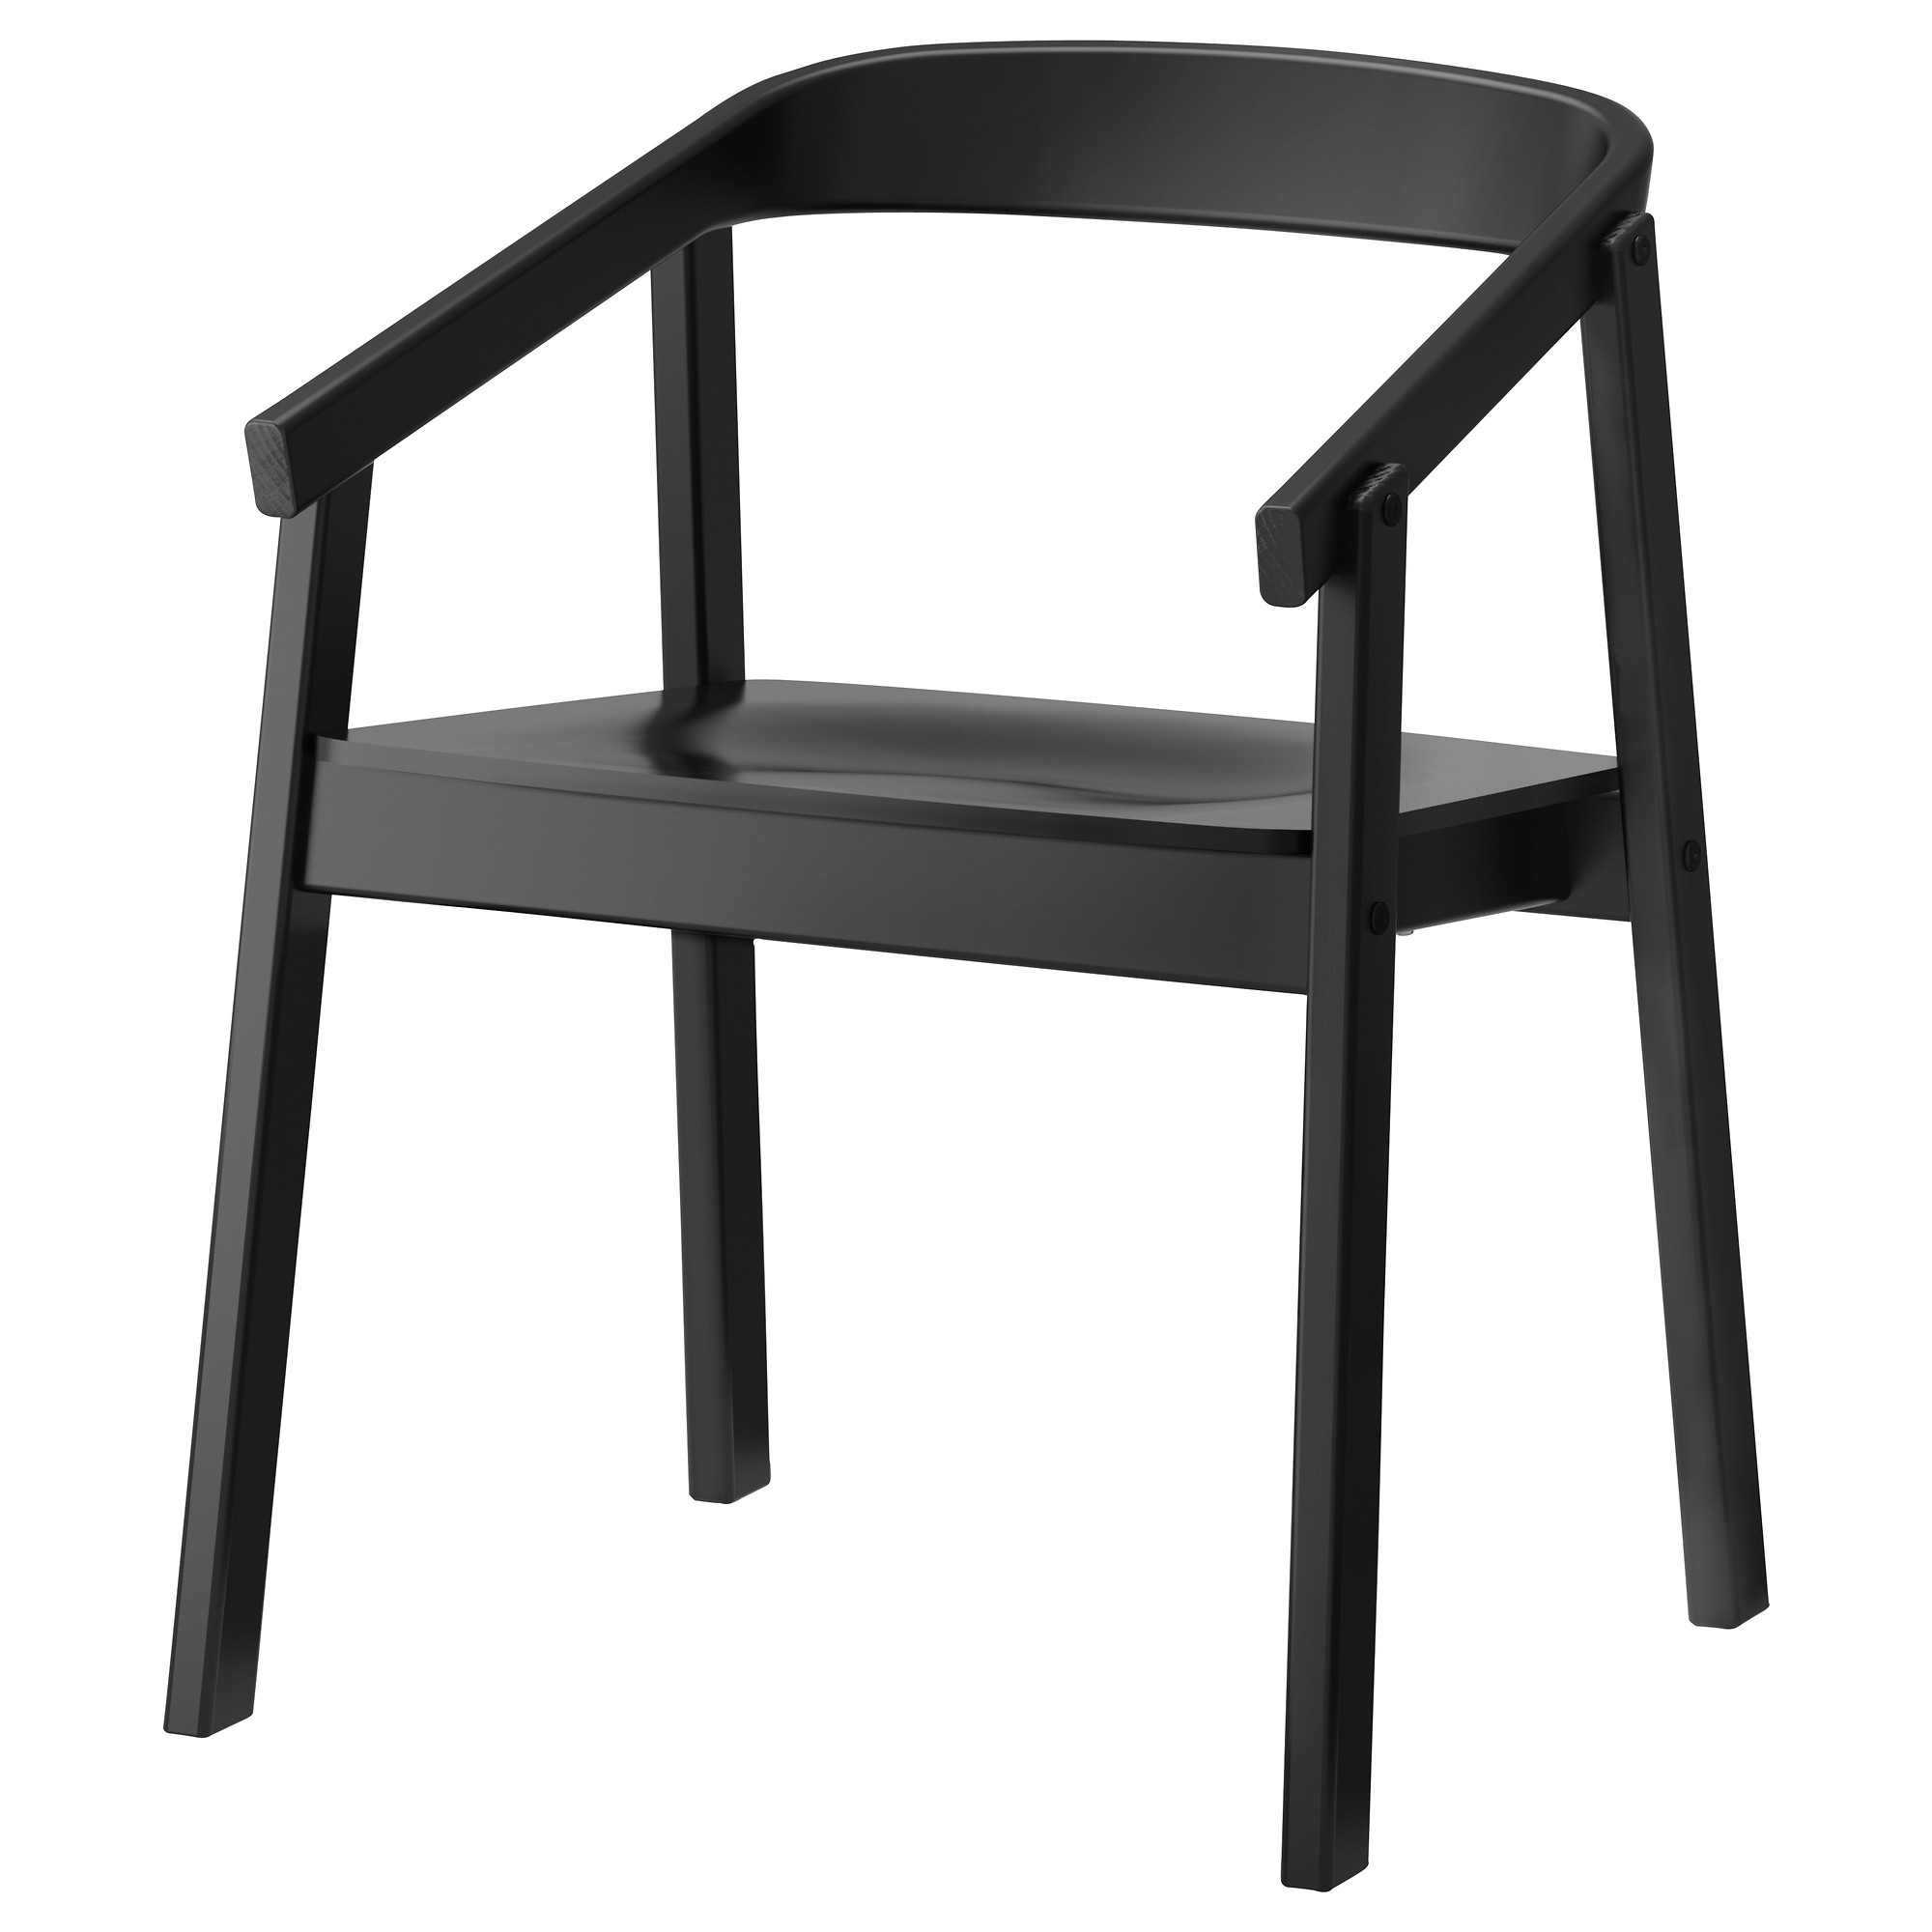 black furniture ikea. black furniture ikea i